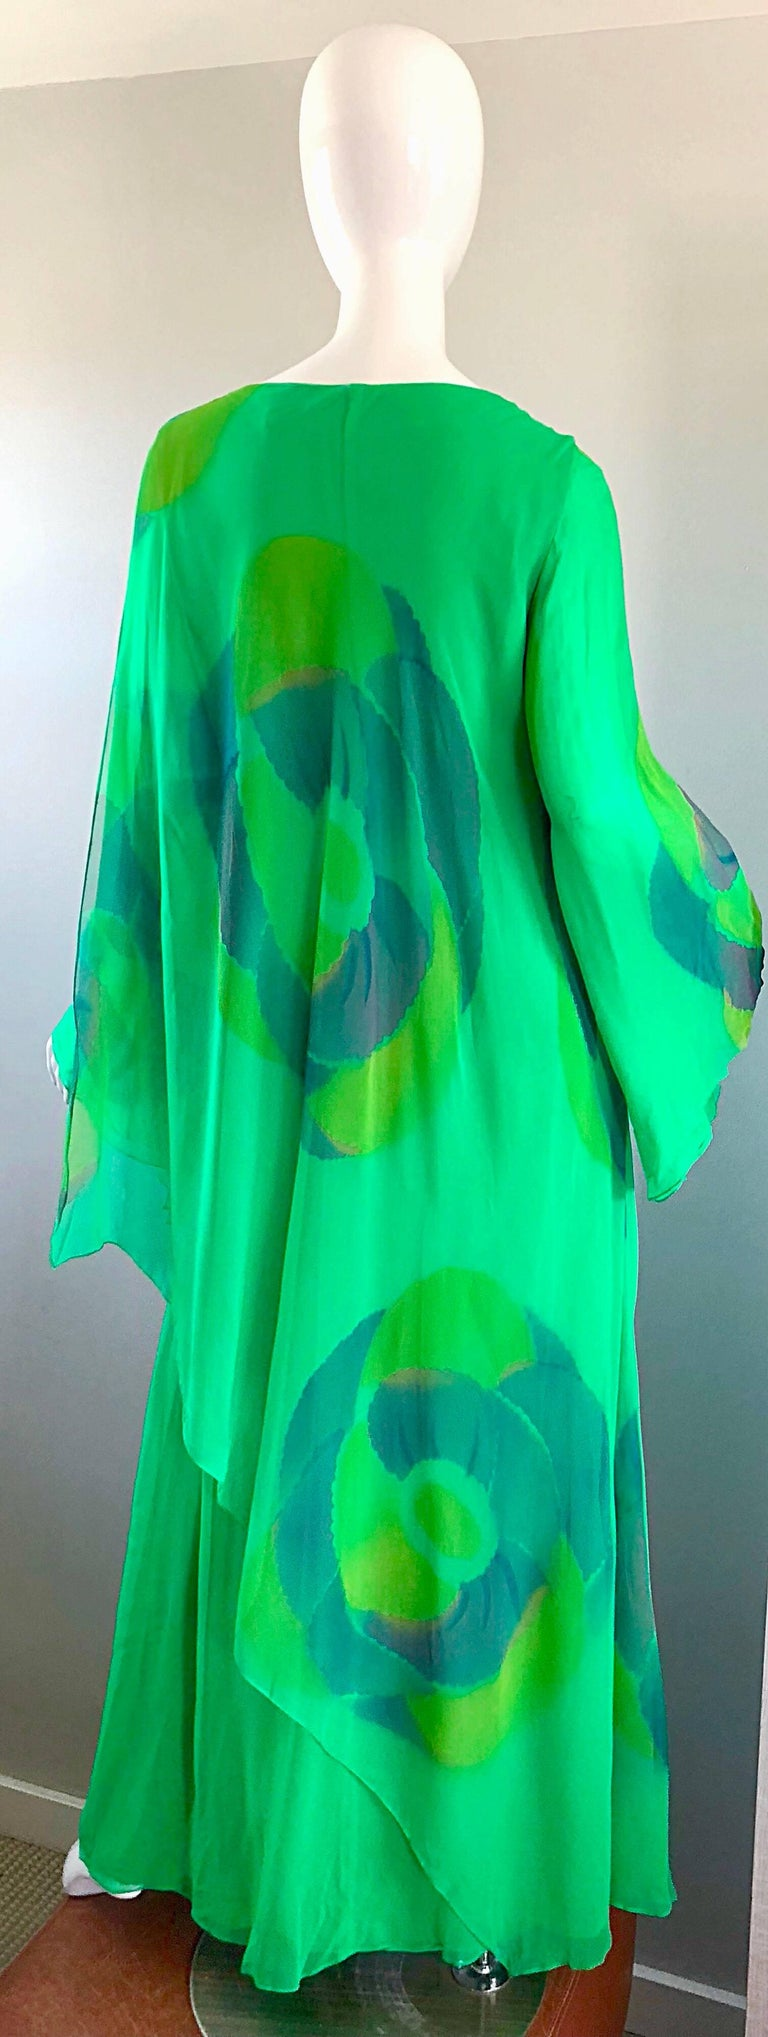 Women's Vintage Travillia Couture 1970s Hand Painted Kelly Green Silk Chiffon 70s Gown For Sale